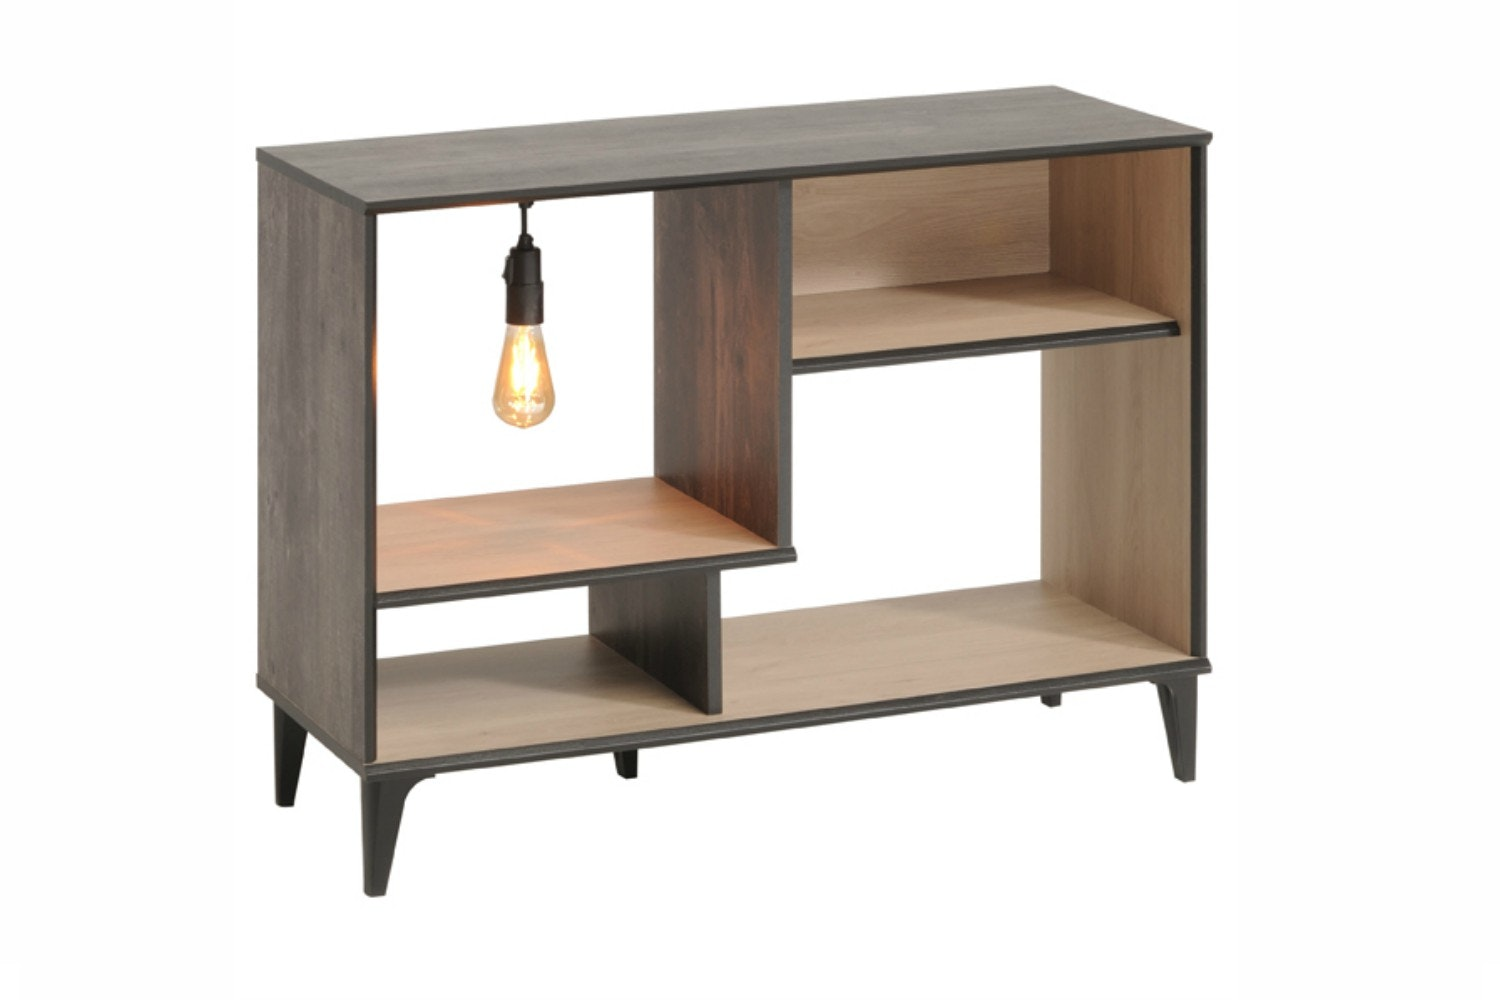 Edison Bookcase Open Storage | Medium